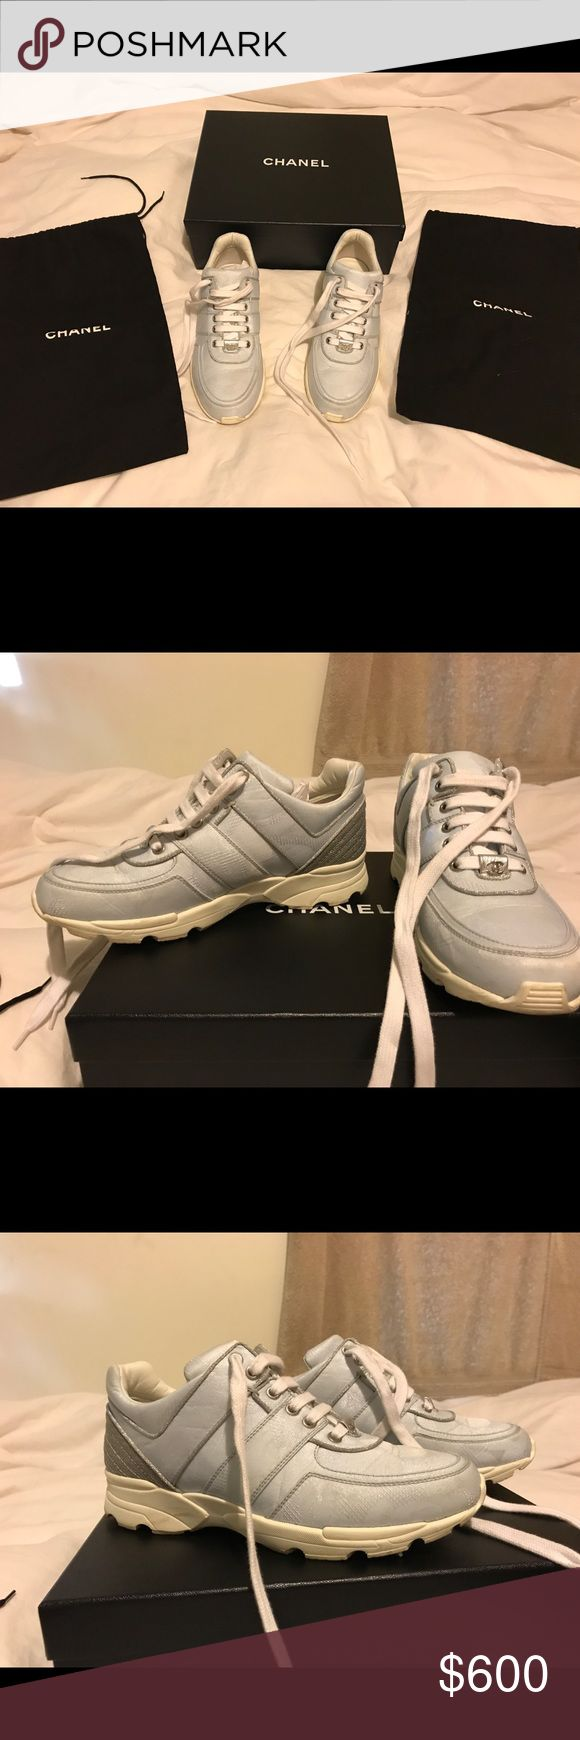 Chanel Tennis Shoes Adorable authentic Chanel tennis shoes from spring/ summer 2017. Worn a couple times only. CHANEL Shoes Sneakers